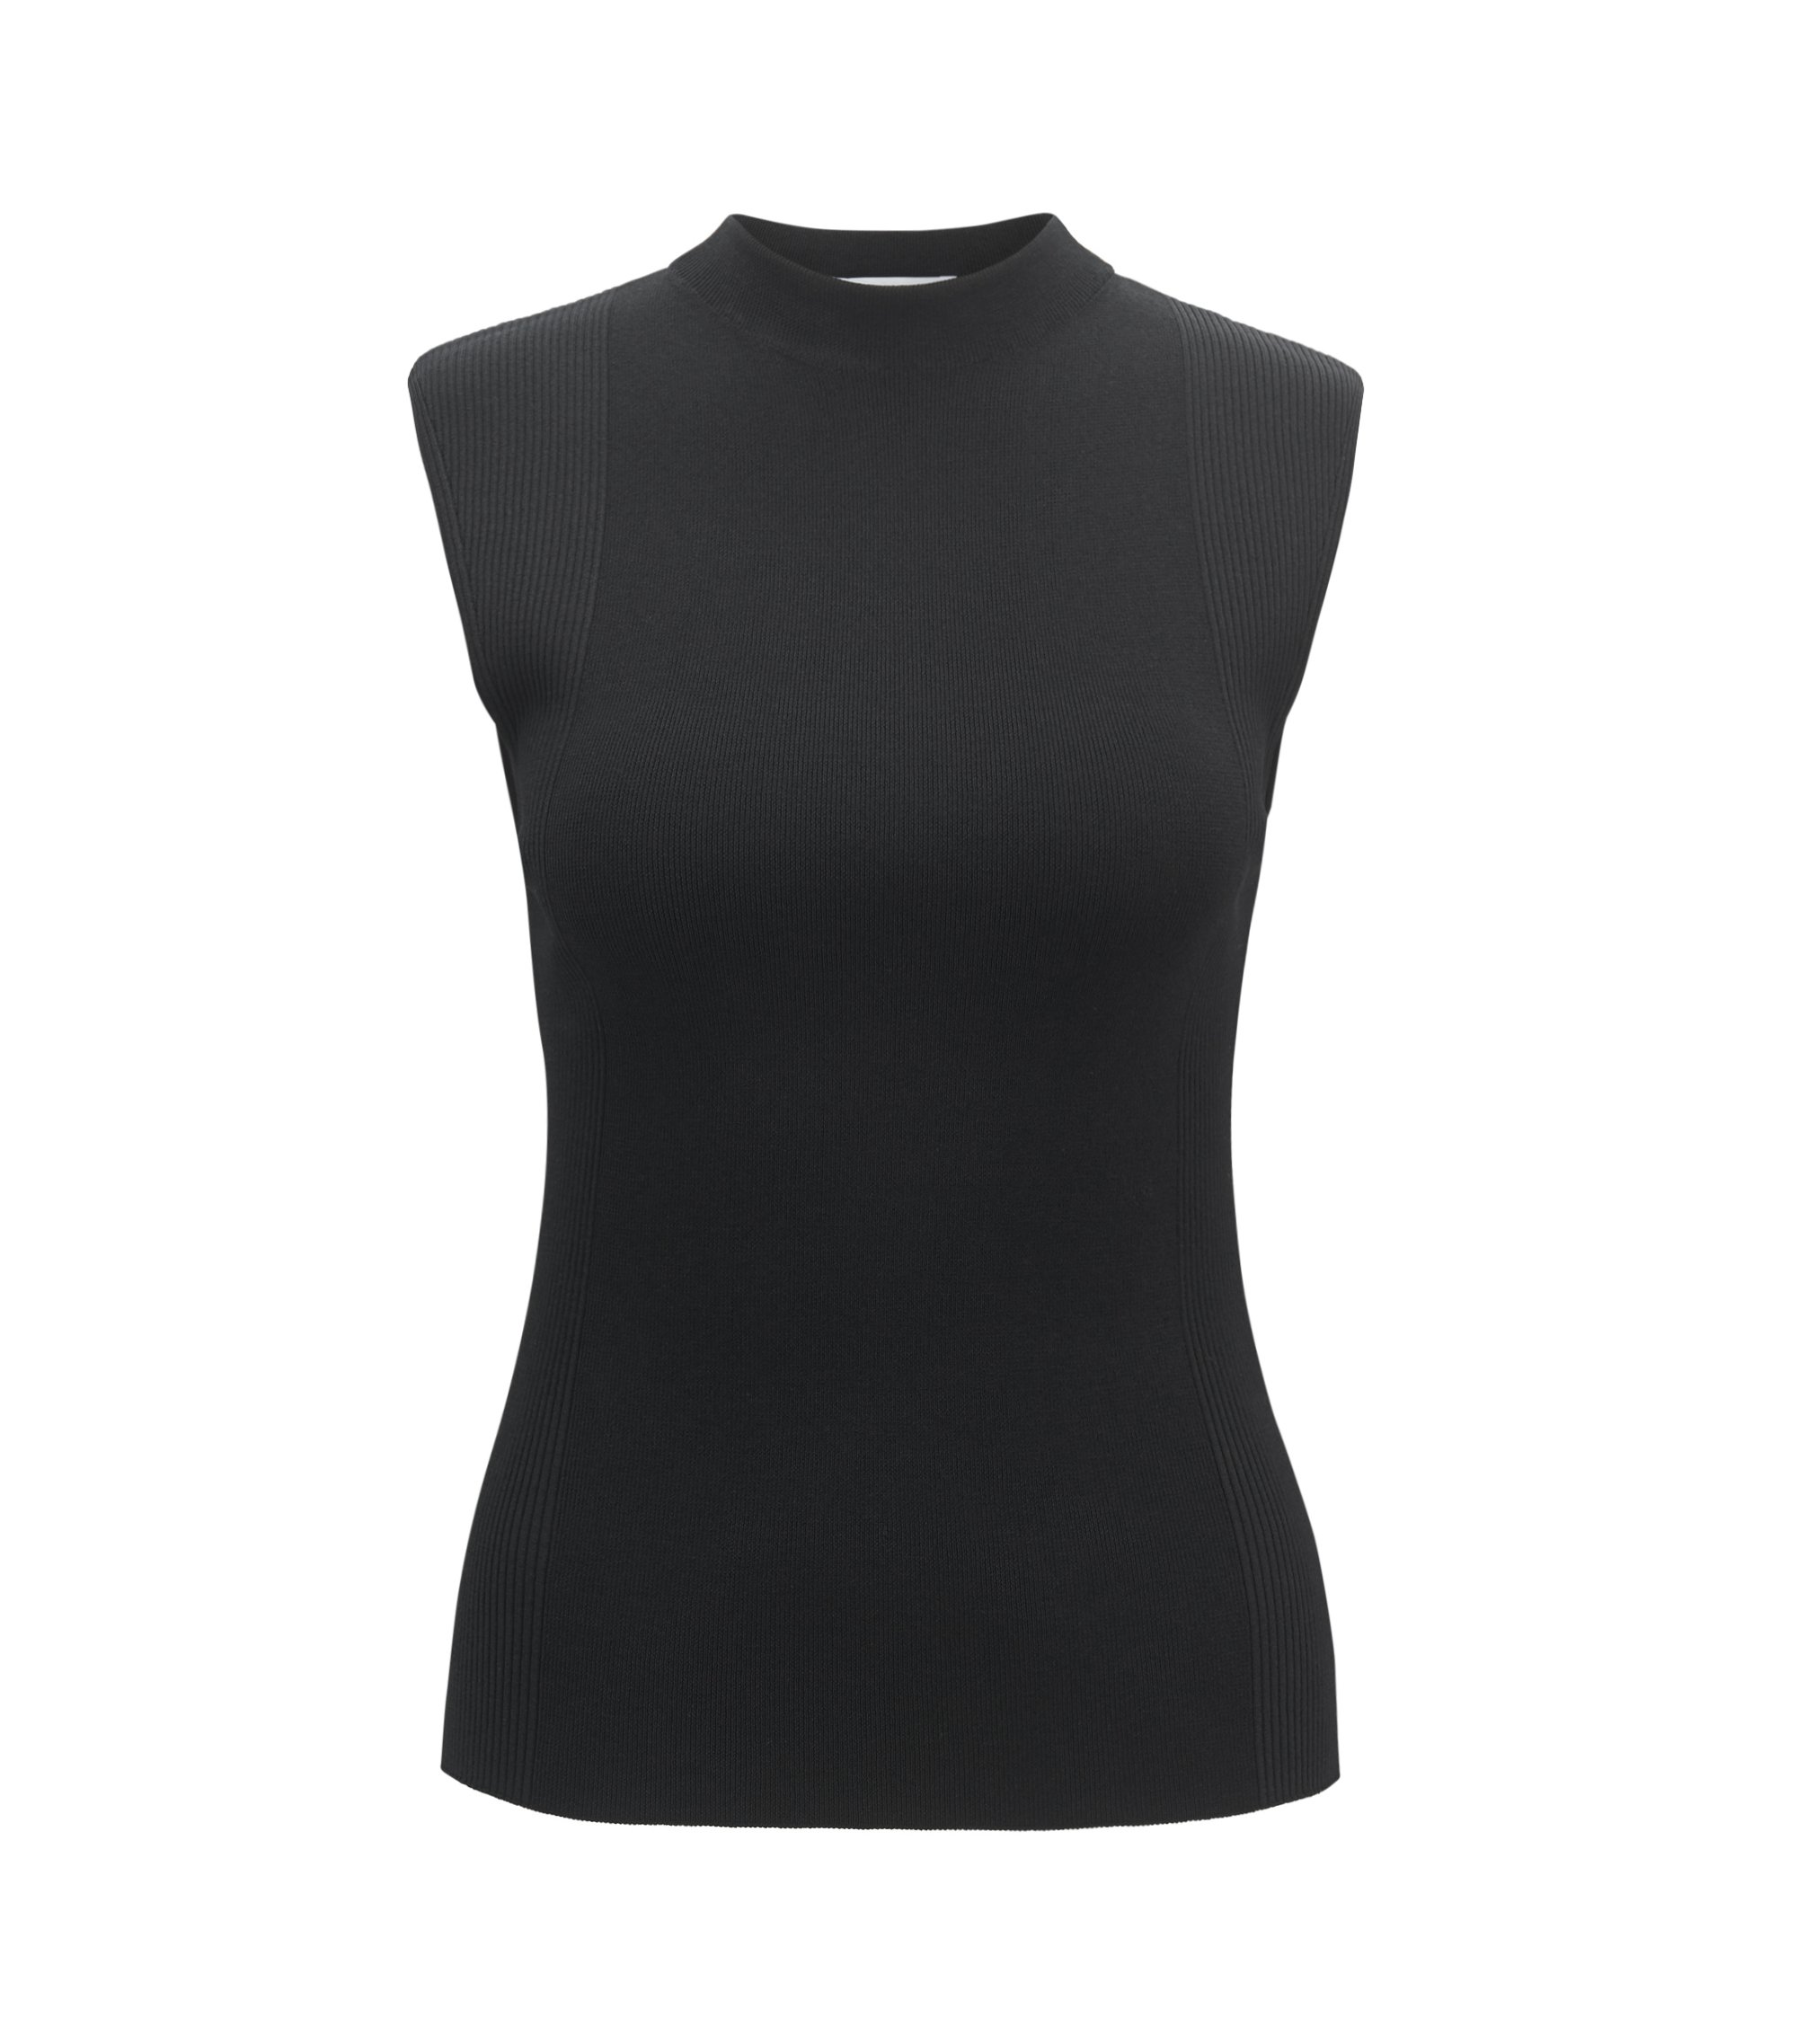 Sleeveless knitted top in ribbed stretch fabric, Black